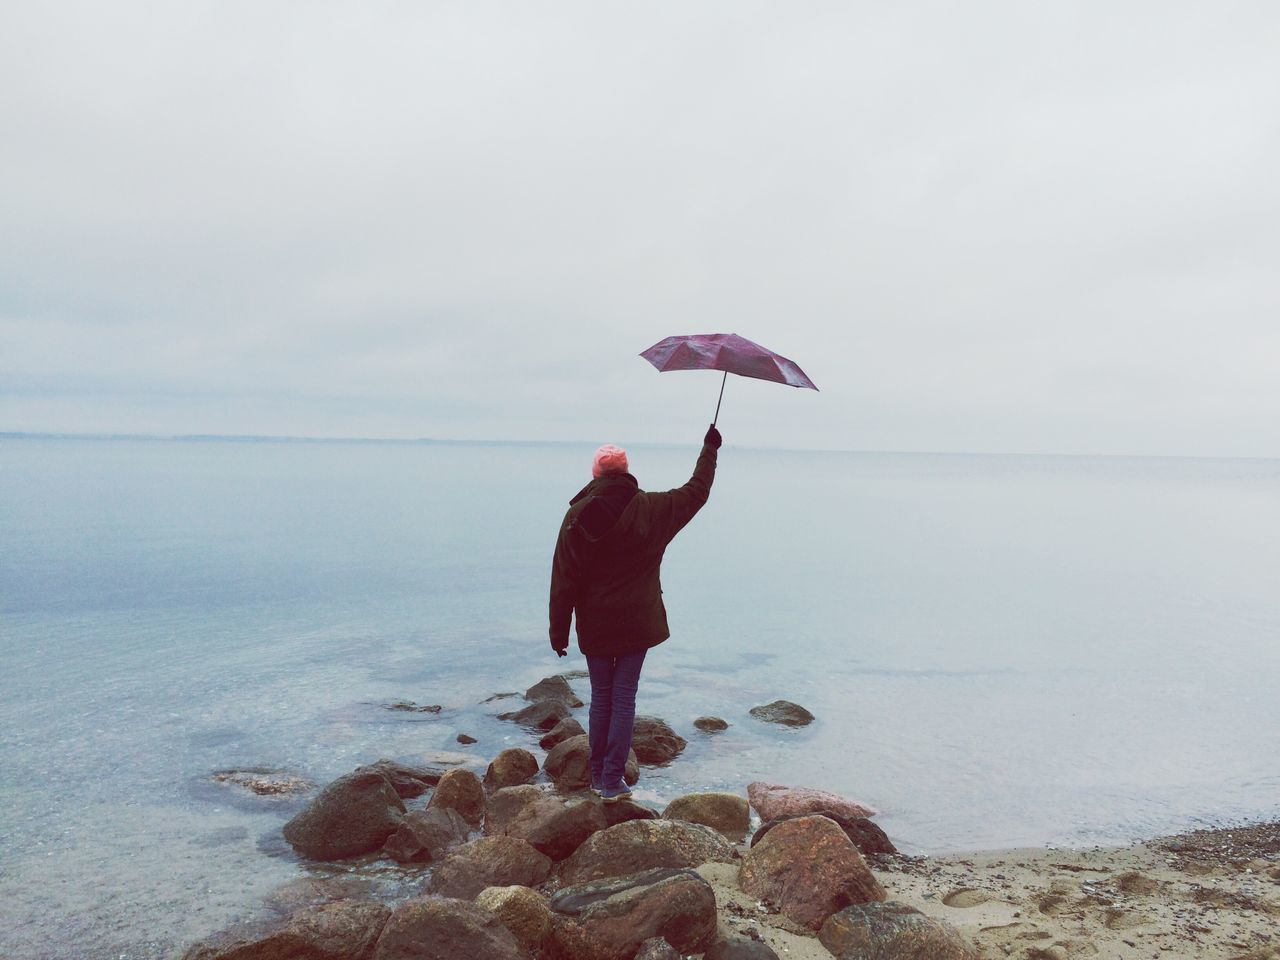 Showcase: November Baltic Sea Mypointofview Allalone Umbrella Marypoppins